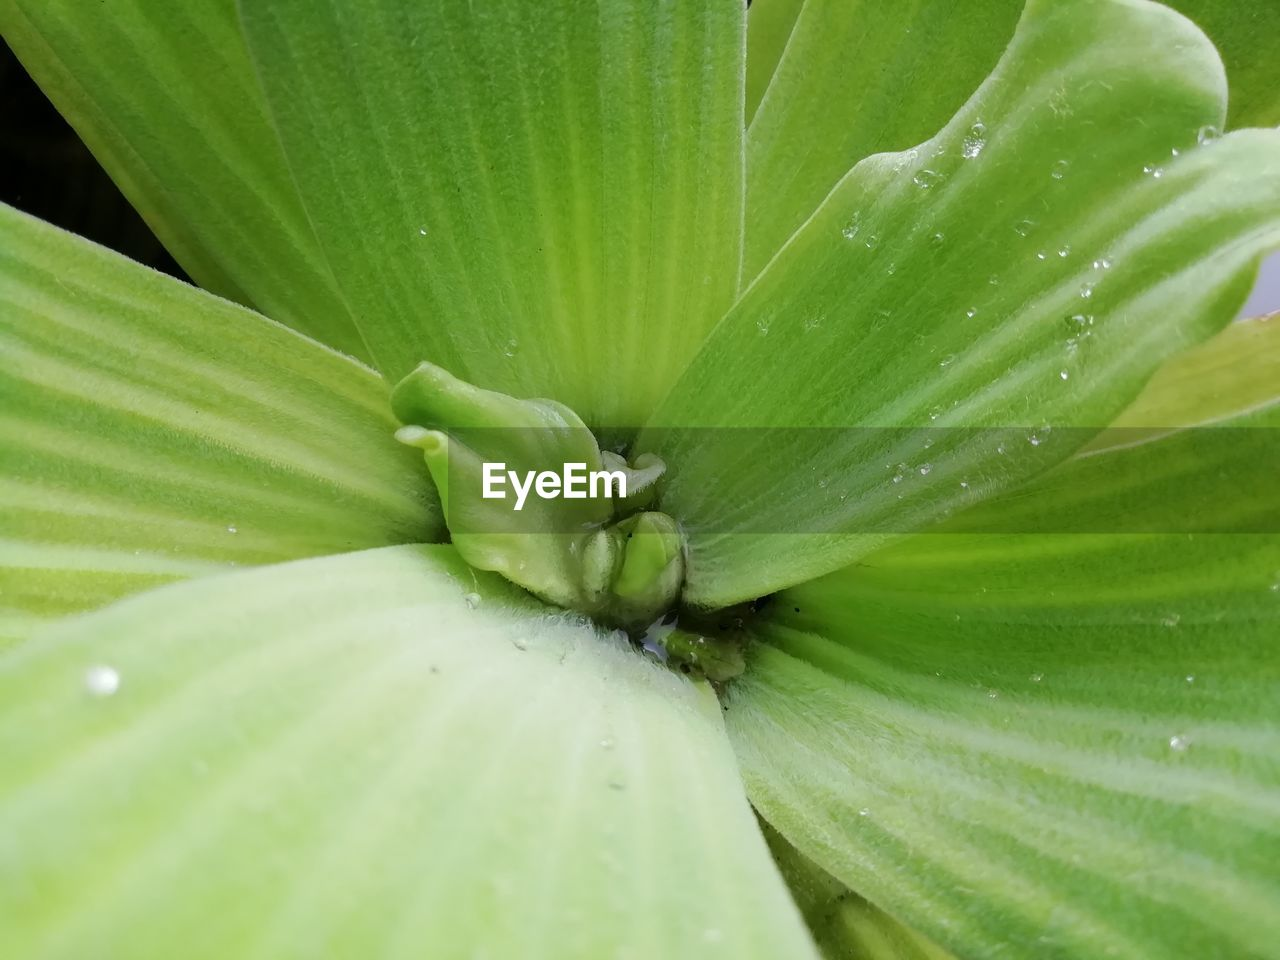 green color, close-up, freshness, growth, full frame, no people, plant, beauty in nature, leaf, backgrounds, plant part, nature, flower, drop, day, outdoors, water, flowering plant, macro, natural pattern, leaves, purity